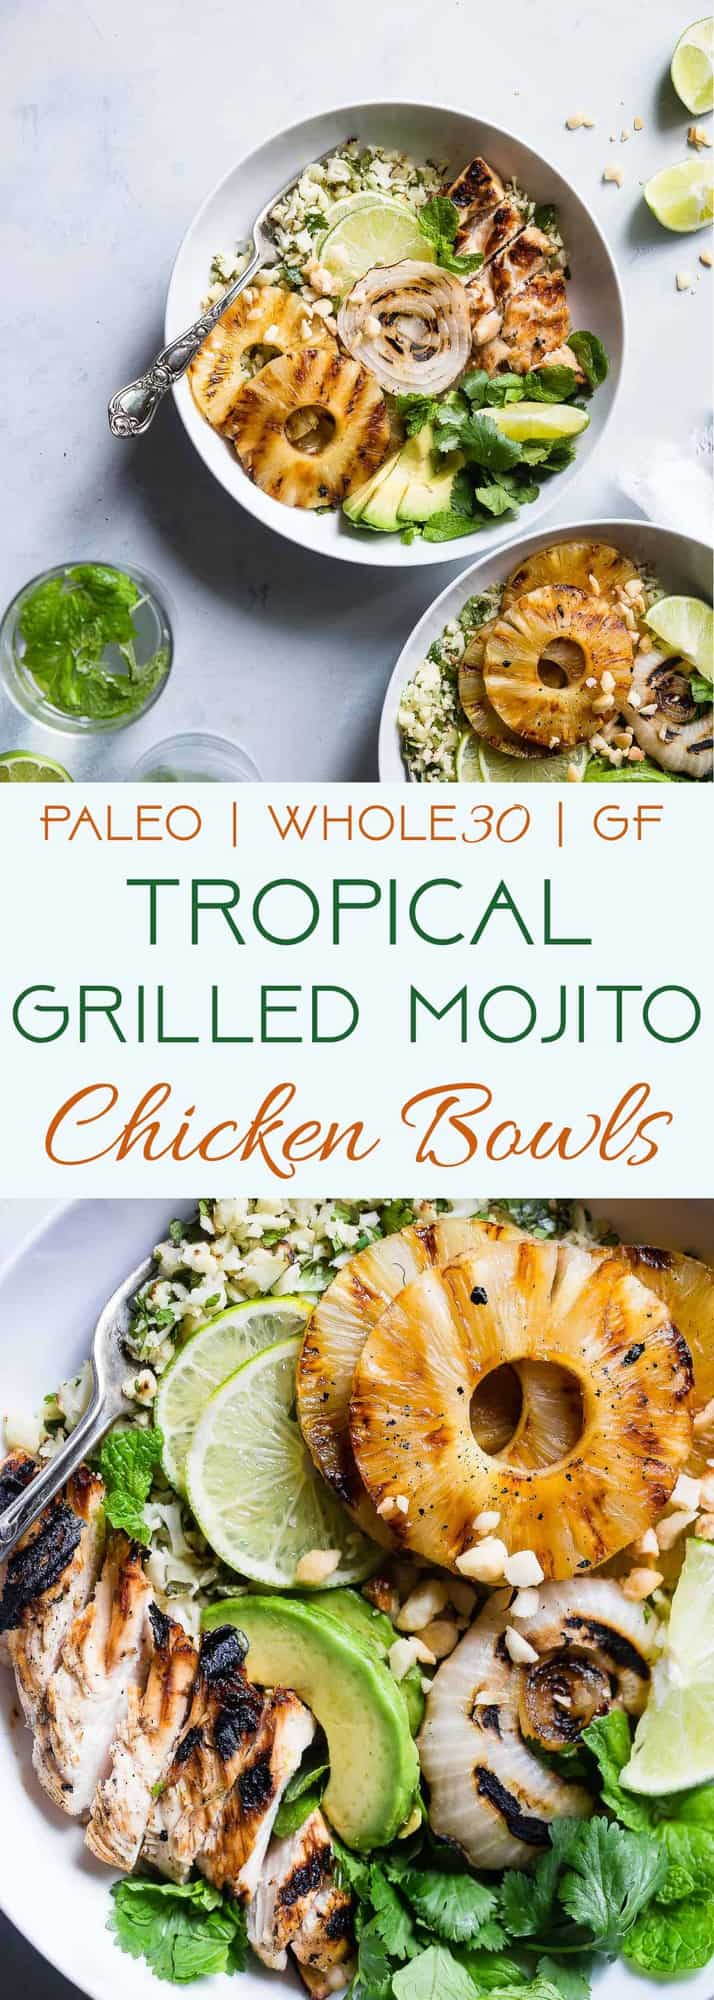 Grilled Tropical Chicken Bowls -These paleo and whole30 compliant Grilled Tropical Chicken bowls are an easy, healthy and gluten free weeknight dinner loaded with sweet and tangy island flavors! Sure to be a crowd pleaser! | #Foodfaithfitness | #Paleo #Whole30 #Glutenfree #Healthy #Chickendinner